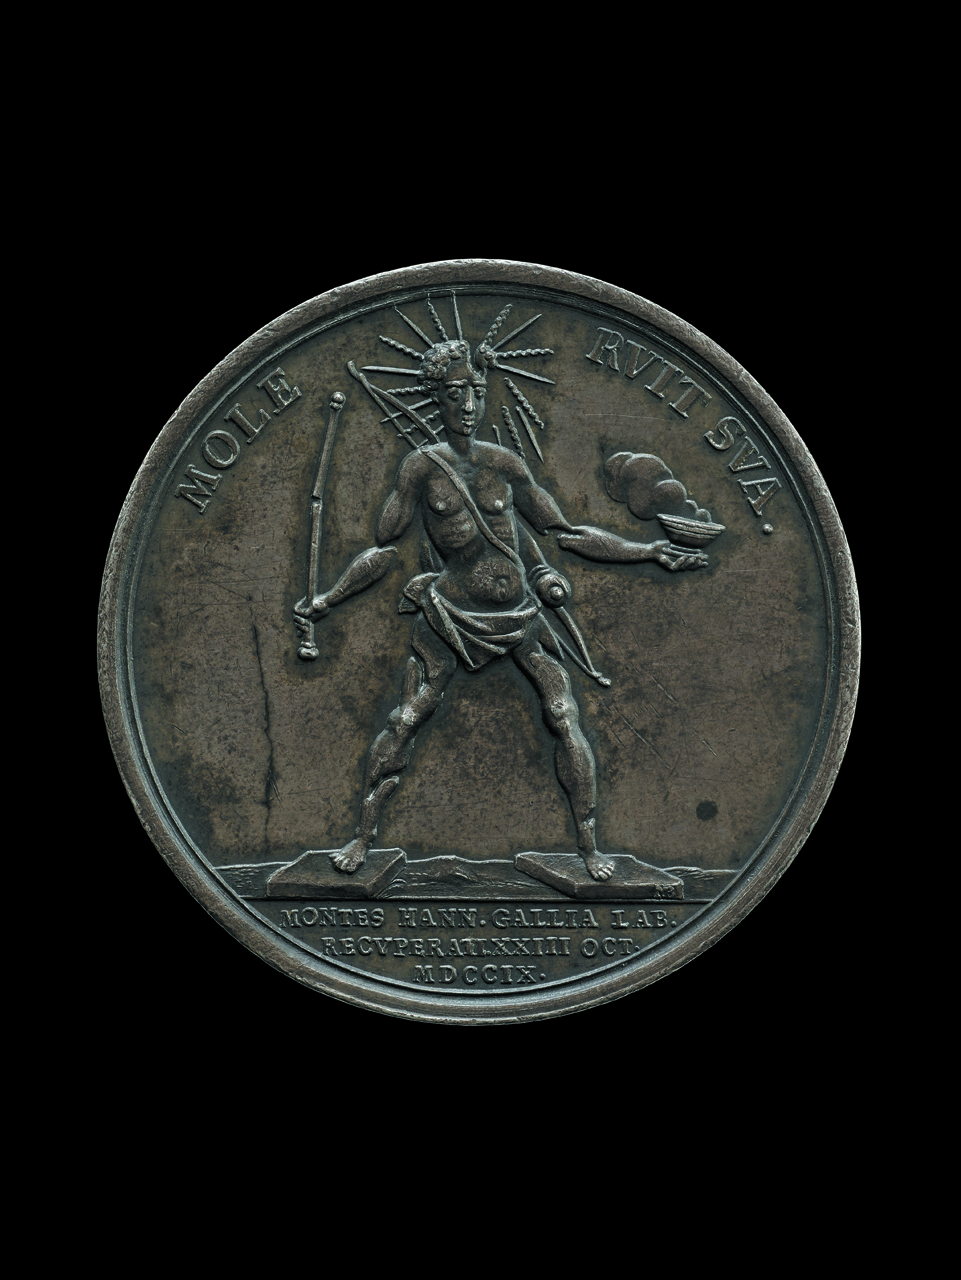 """""""Colossus of Rhodes"""" (1709), Louis XIV is shown as the Colossus of Rhodes crumbling under its own weight.The medal celebrates the capture of Hainault from the French in 1709 and is representative of the widespread feeling that Louis' pre-eminence was coming to an end (© The Trustees of the British Museum)"""